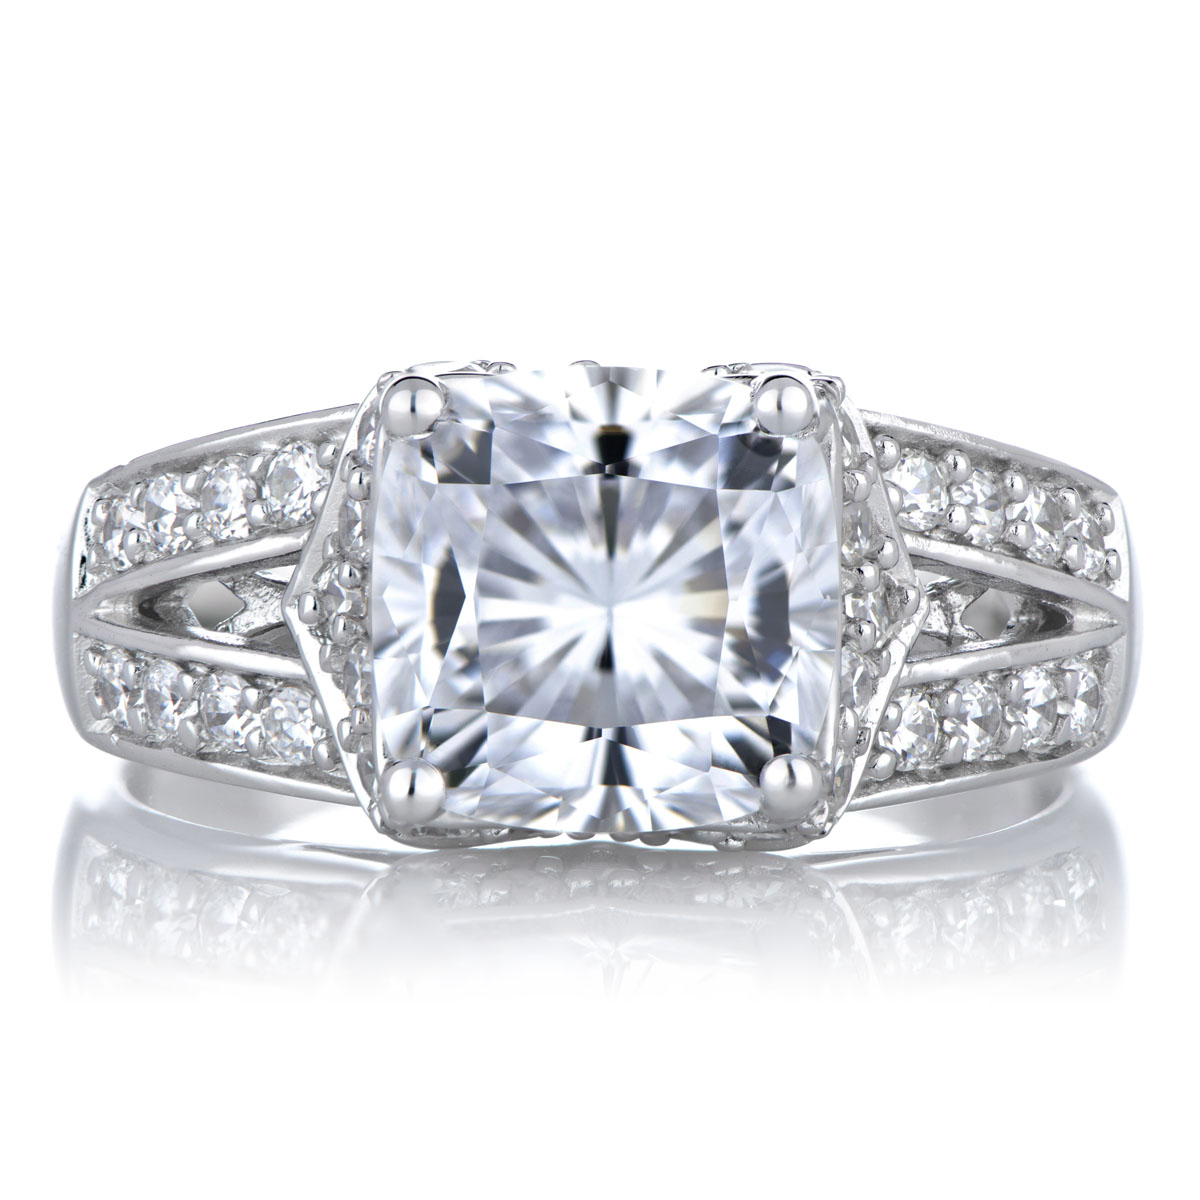 Marinel s Cushion Cut CZ Wedding Ring Set